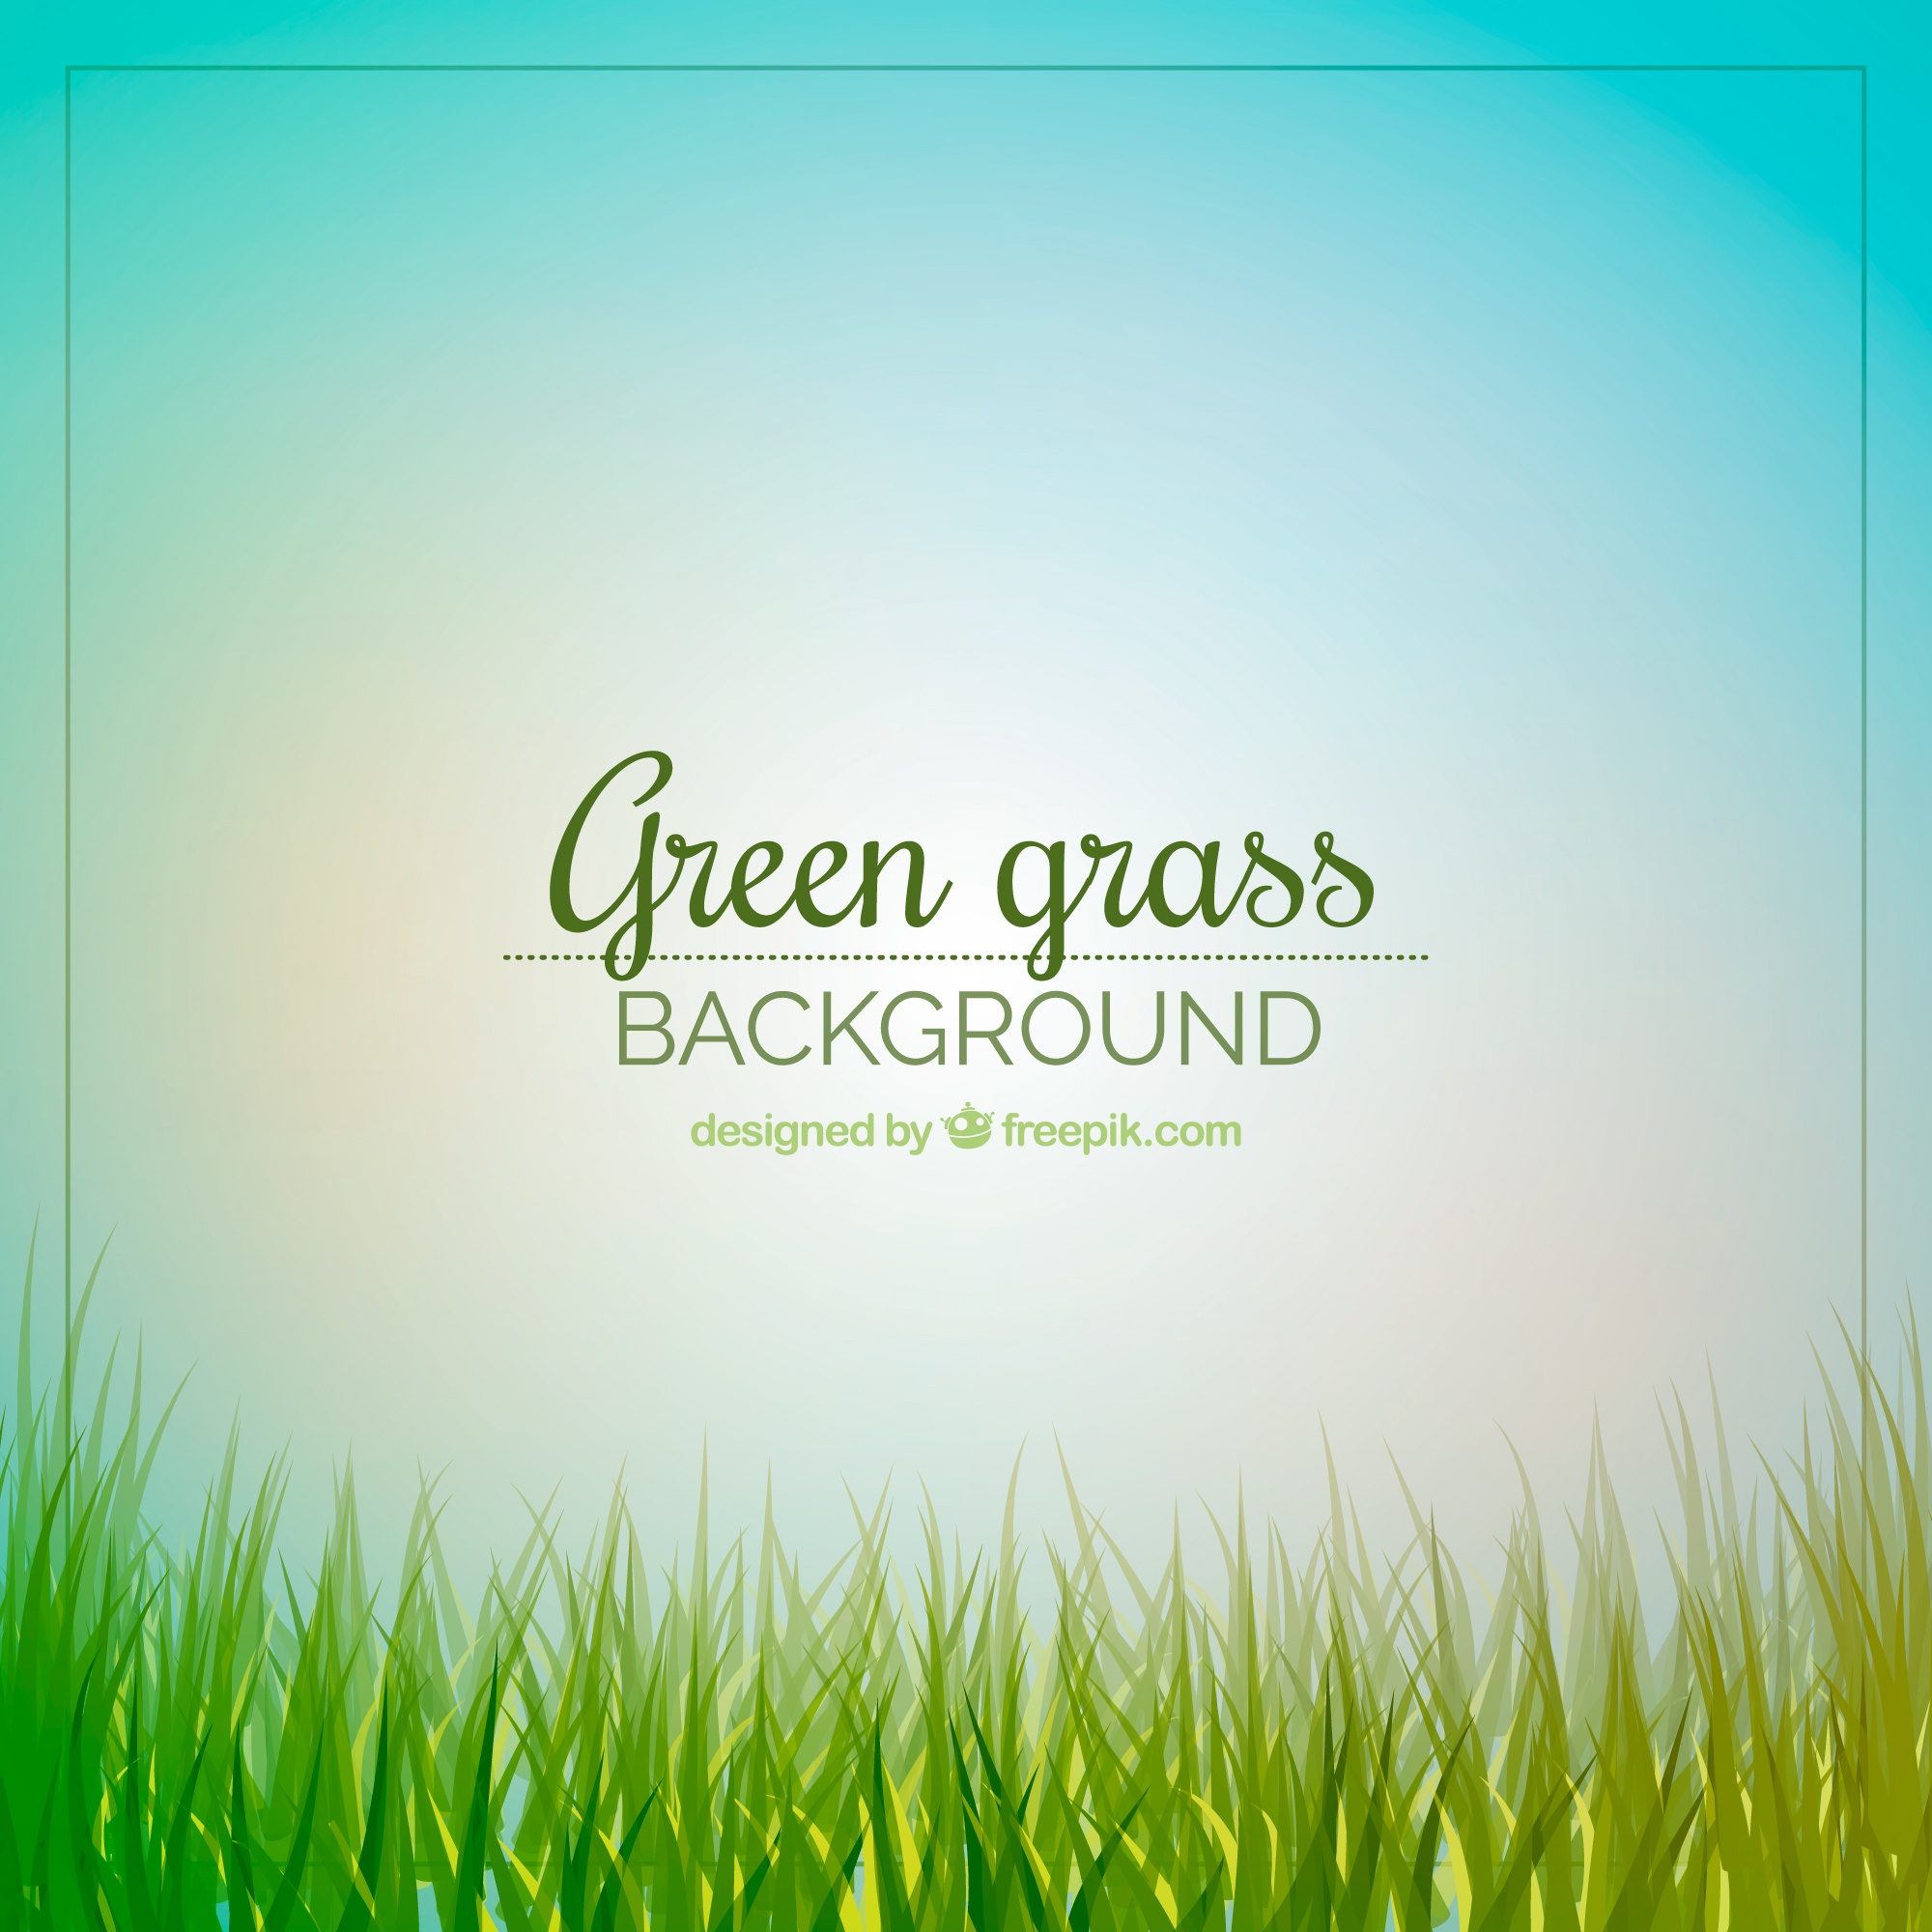 Cute background of green grass and sky